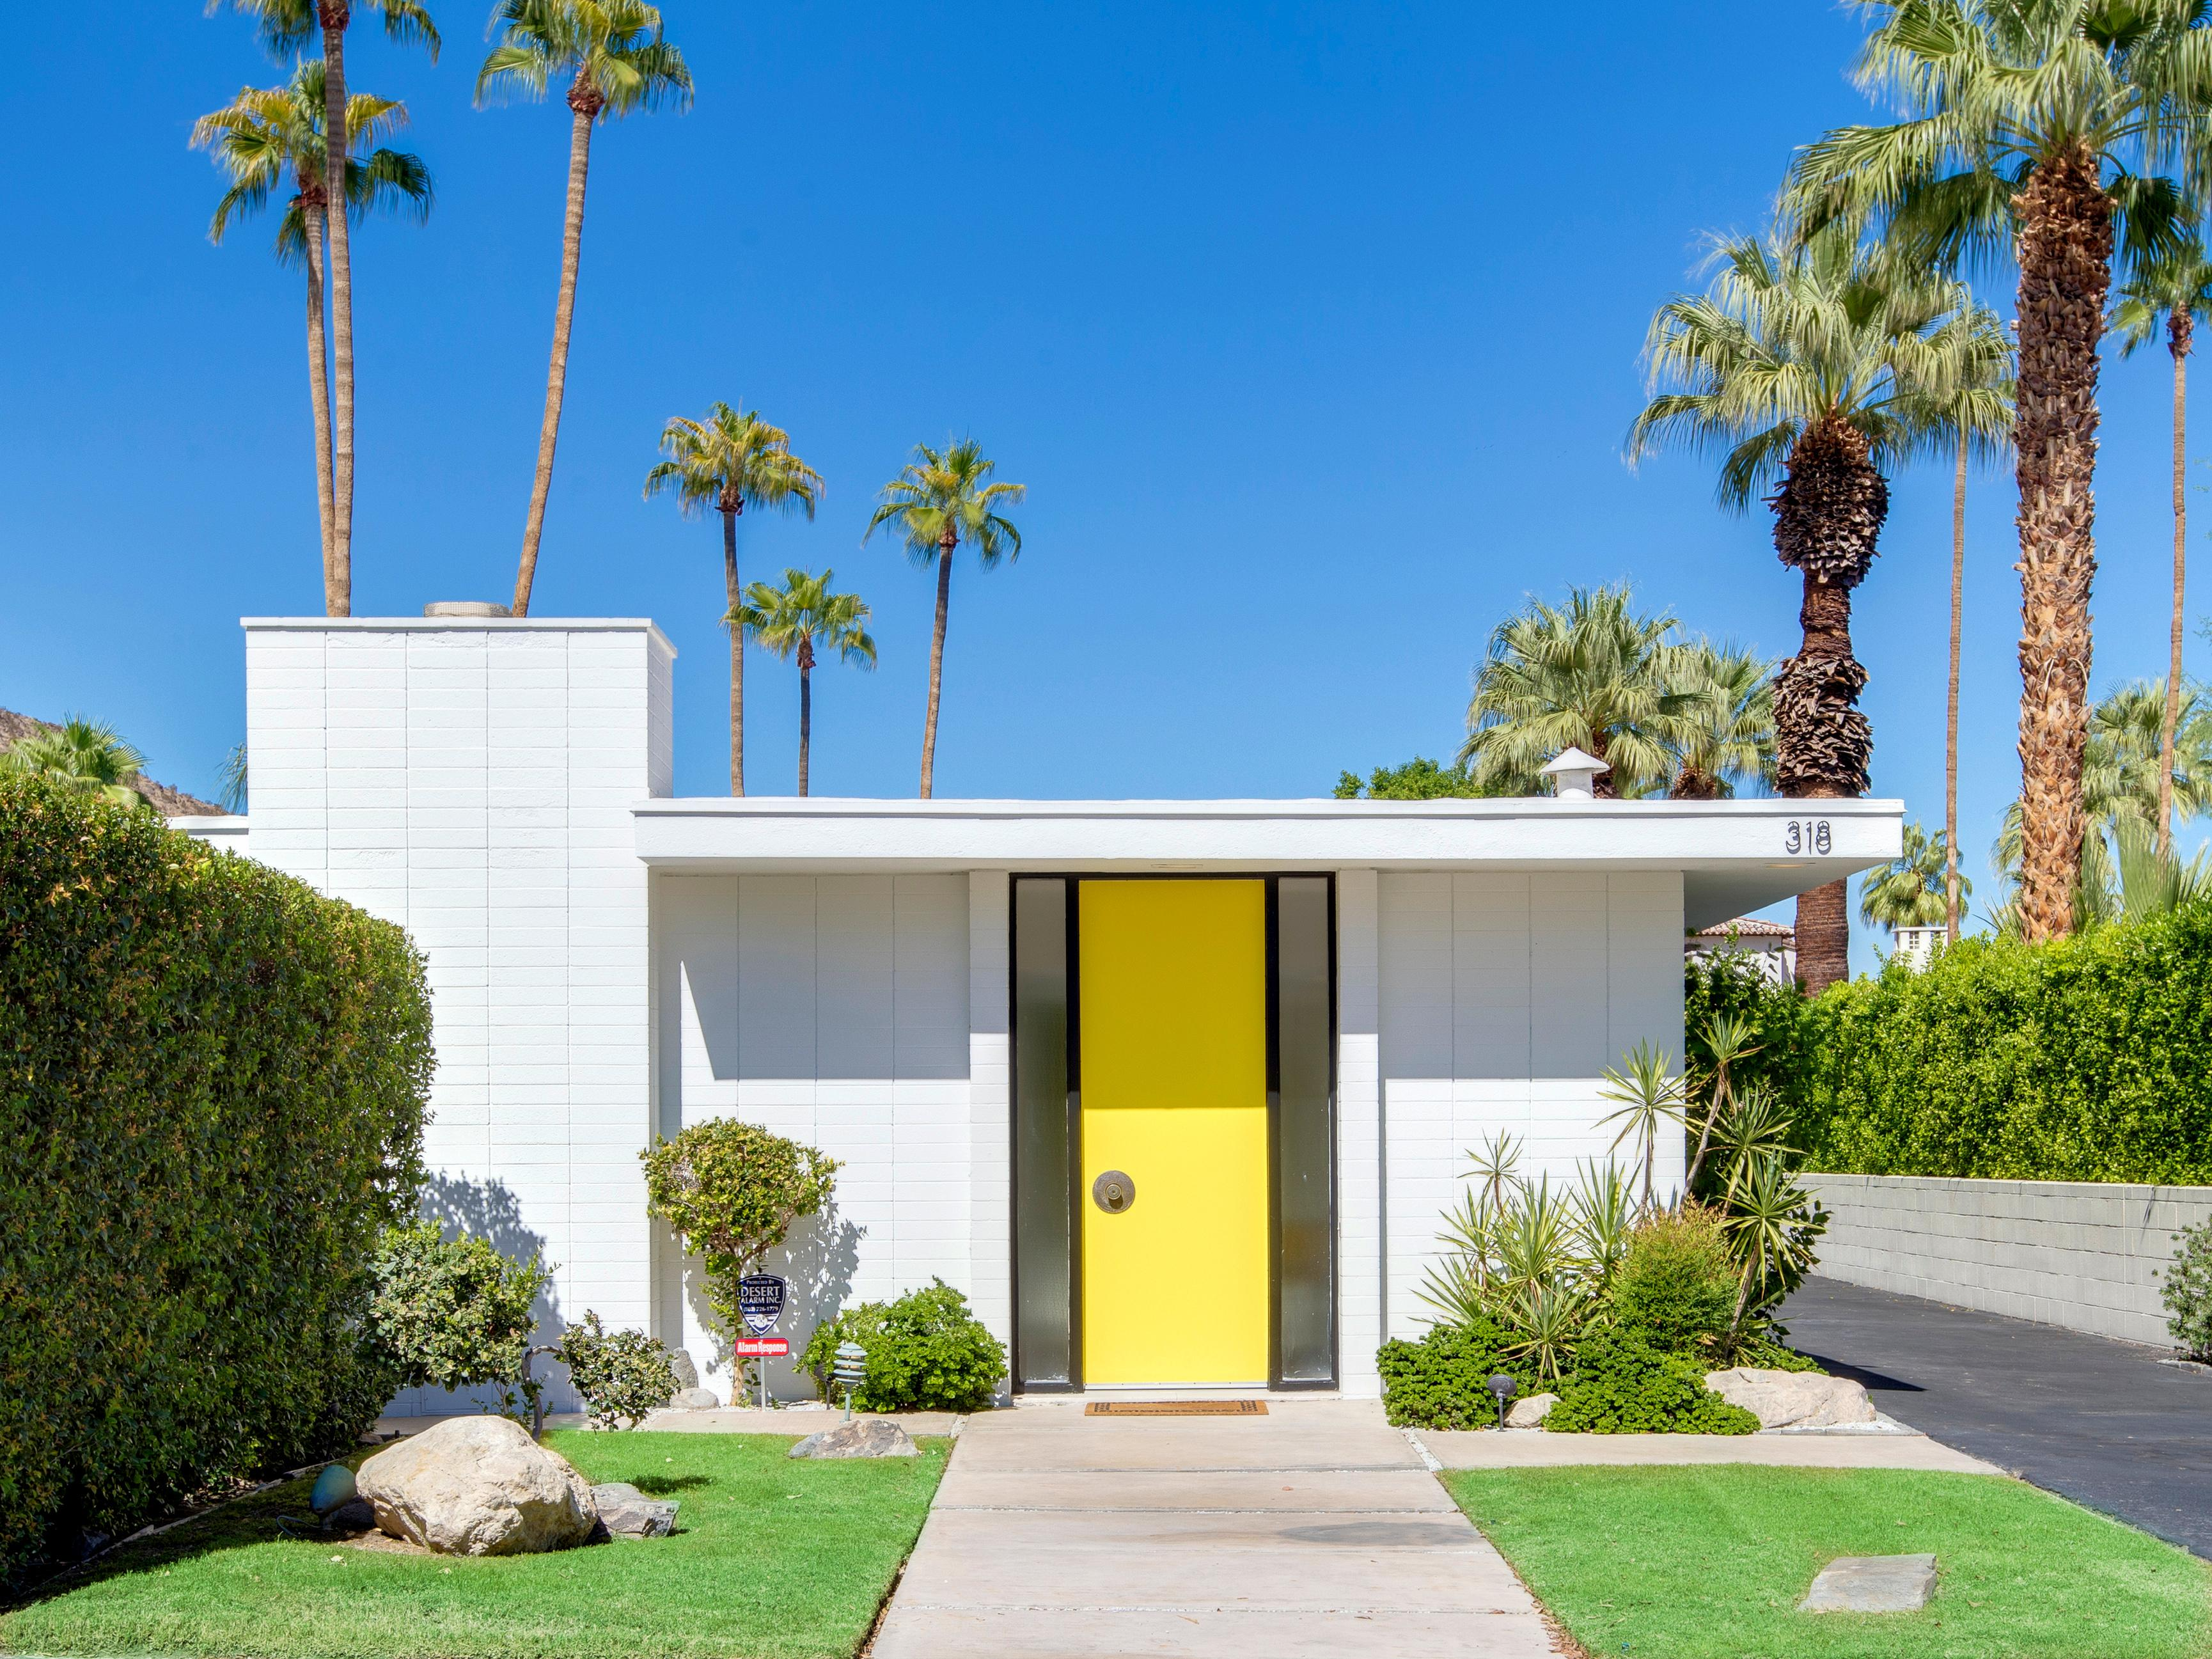 Property Image 1 - Perfectly Preserved Home Palm Springs with Sunny Decor